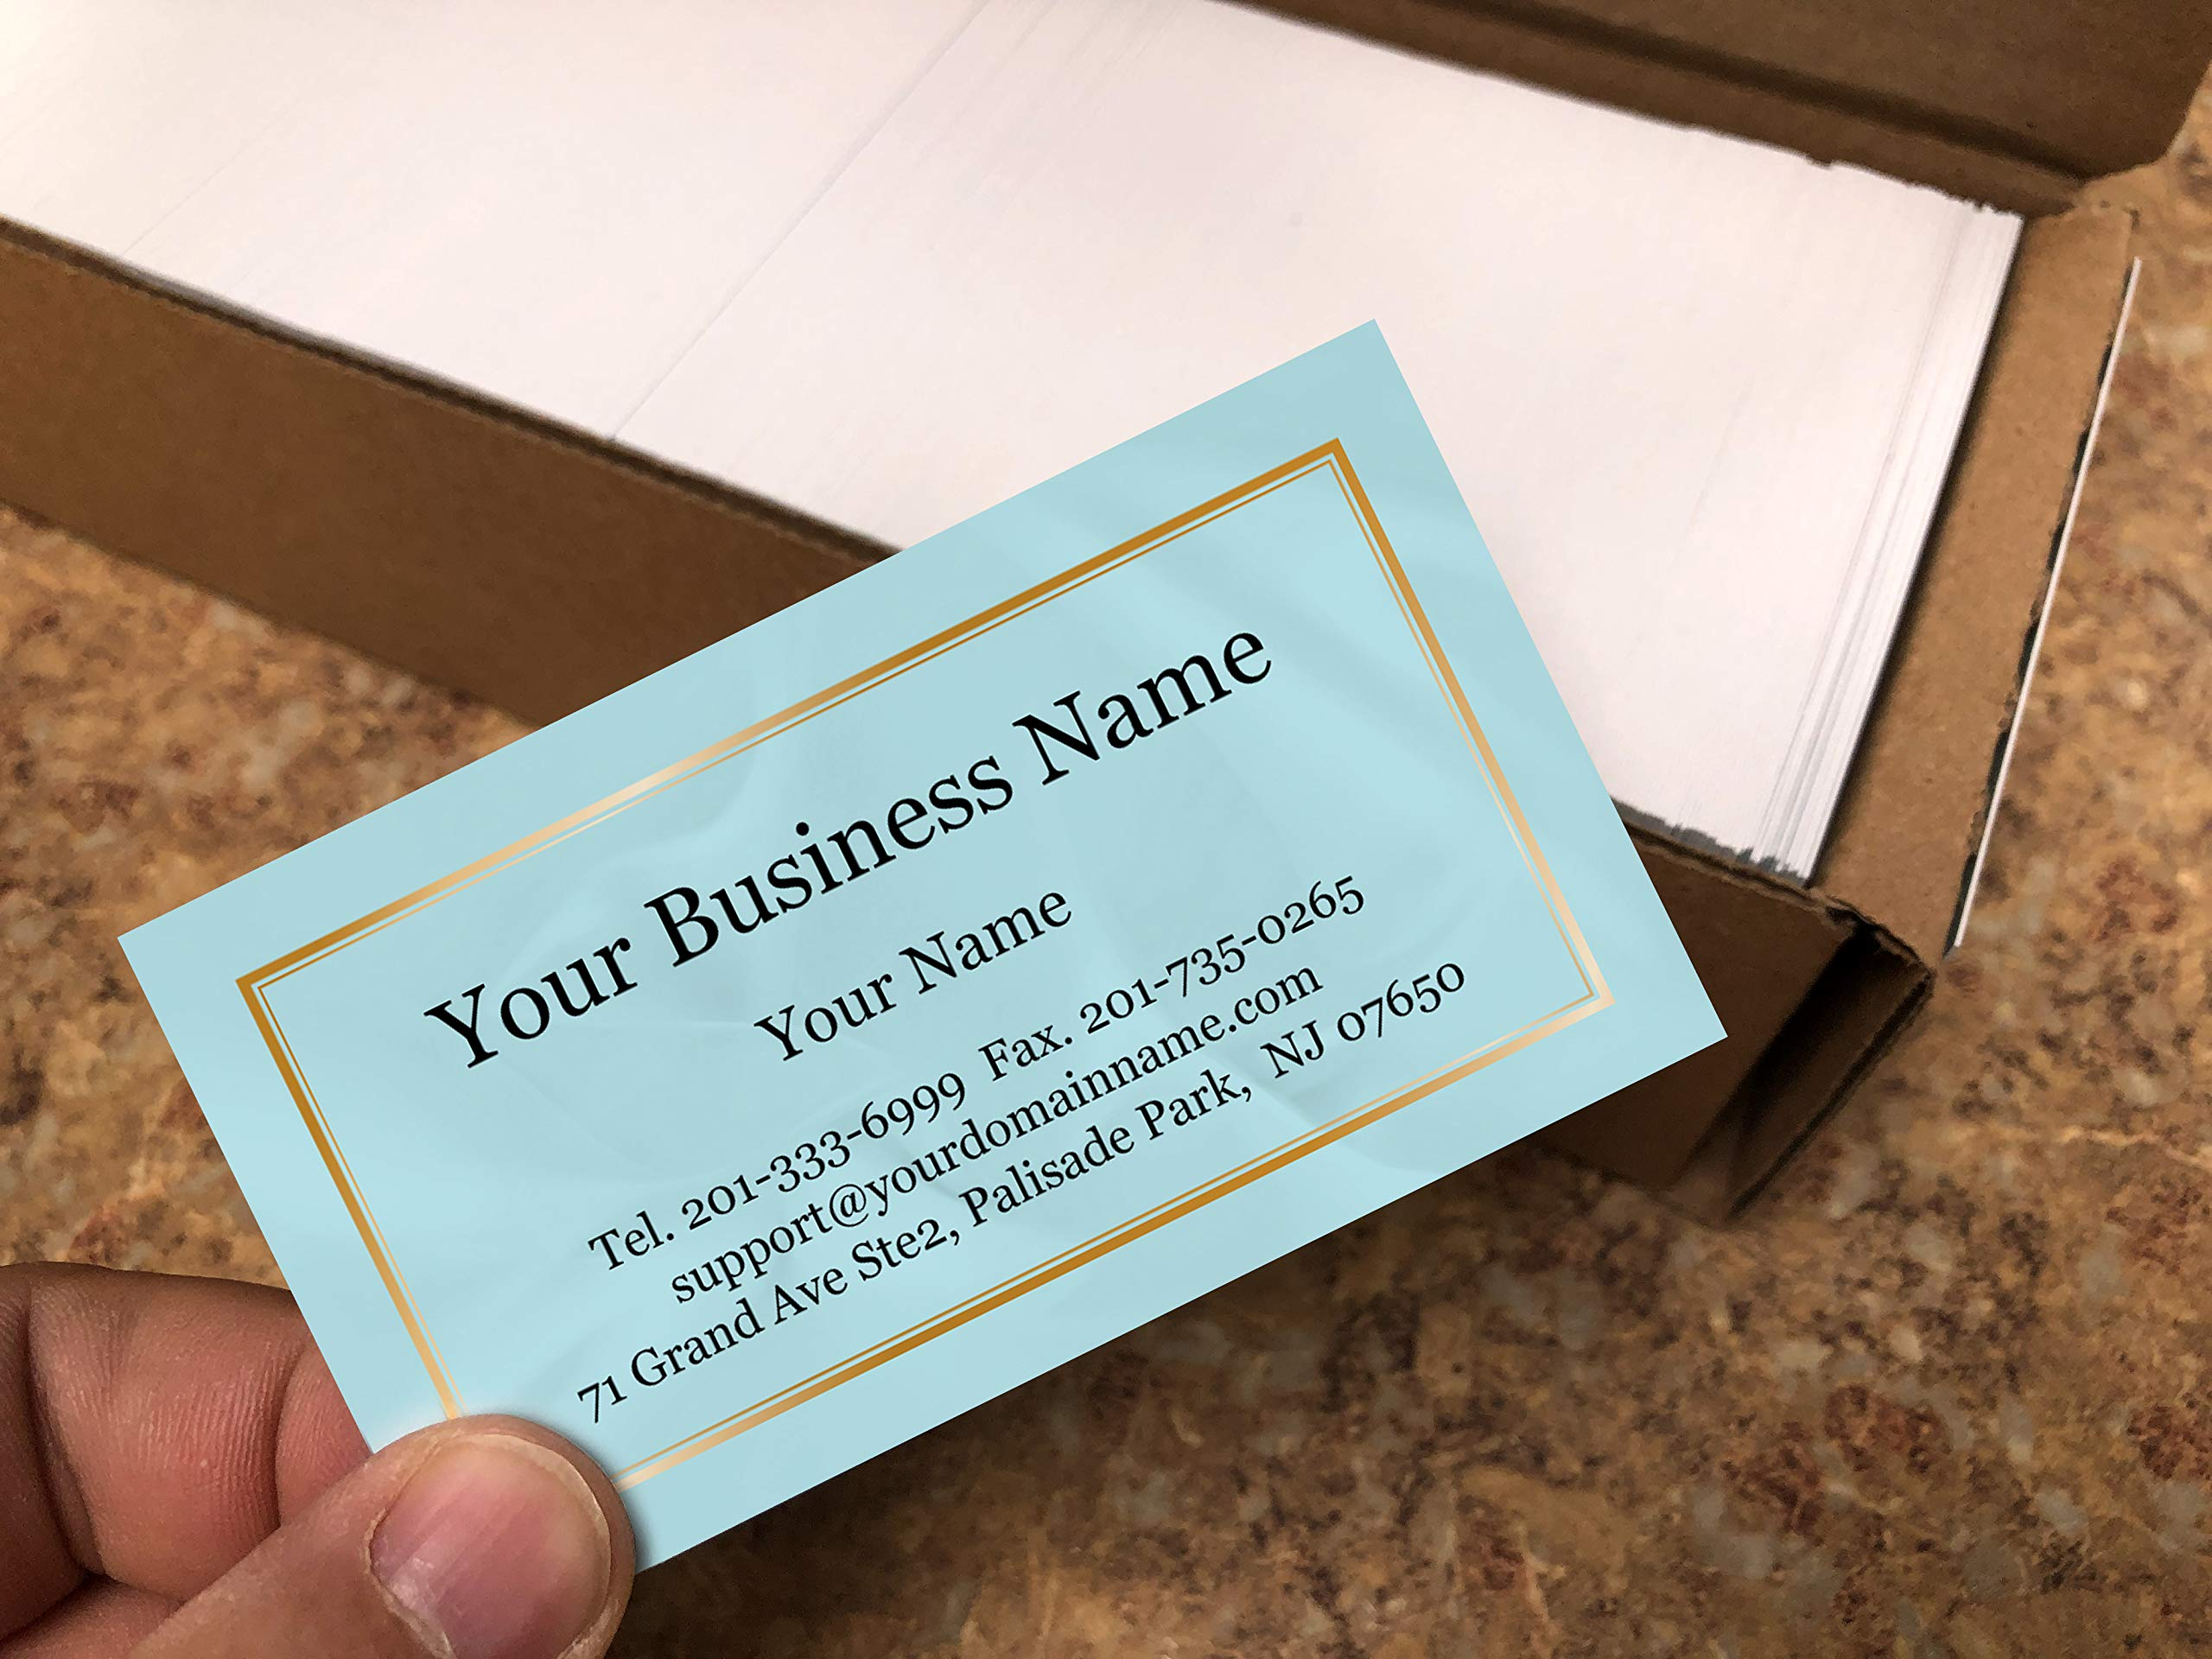 Custom Business Cards 500pcs- Modern Teal Image-16pt cover (129 lbs. 350gsm-Thick paper),Offset Printing, Made in The USA by IMPACTONLINEPRINTING (Image #2)